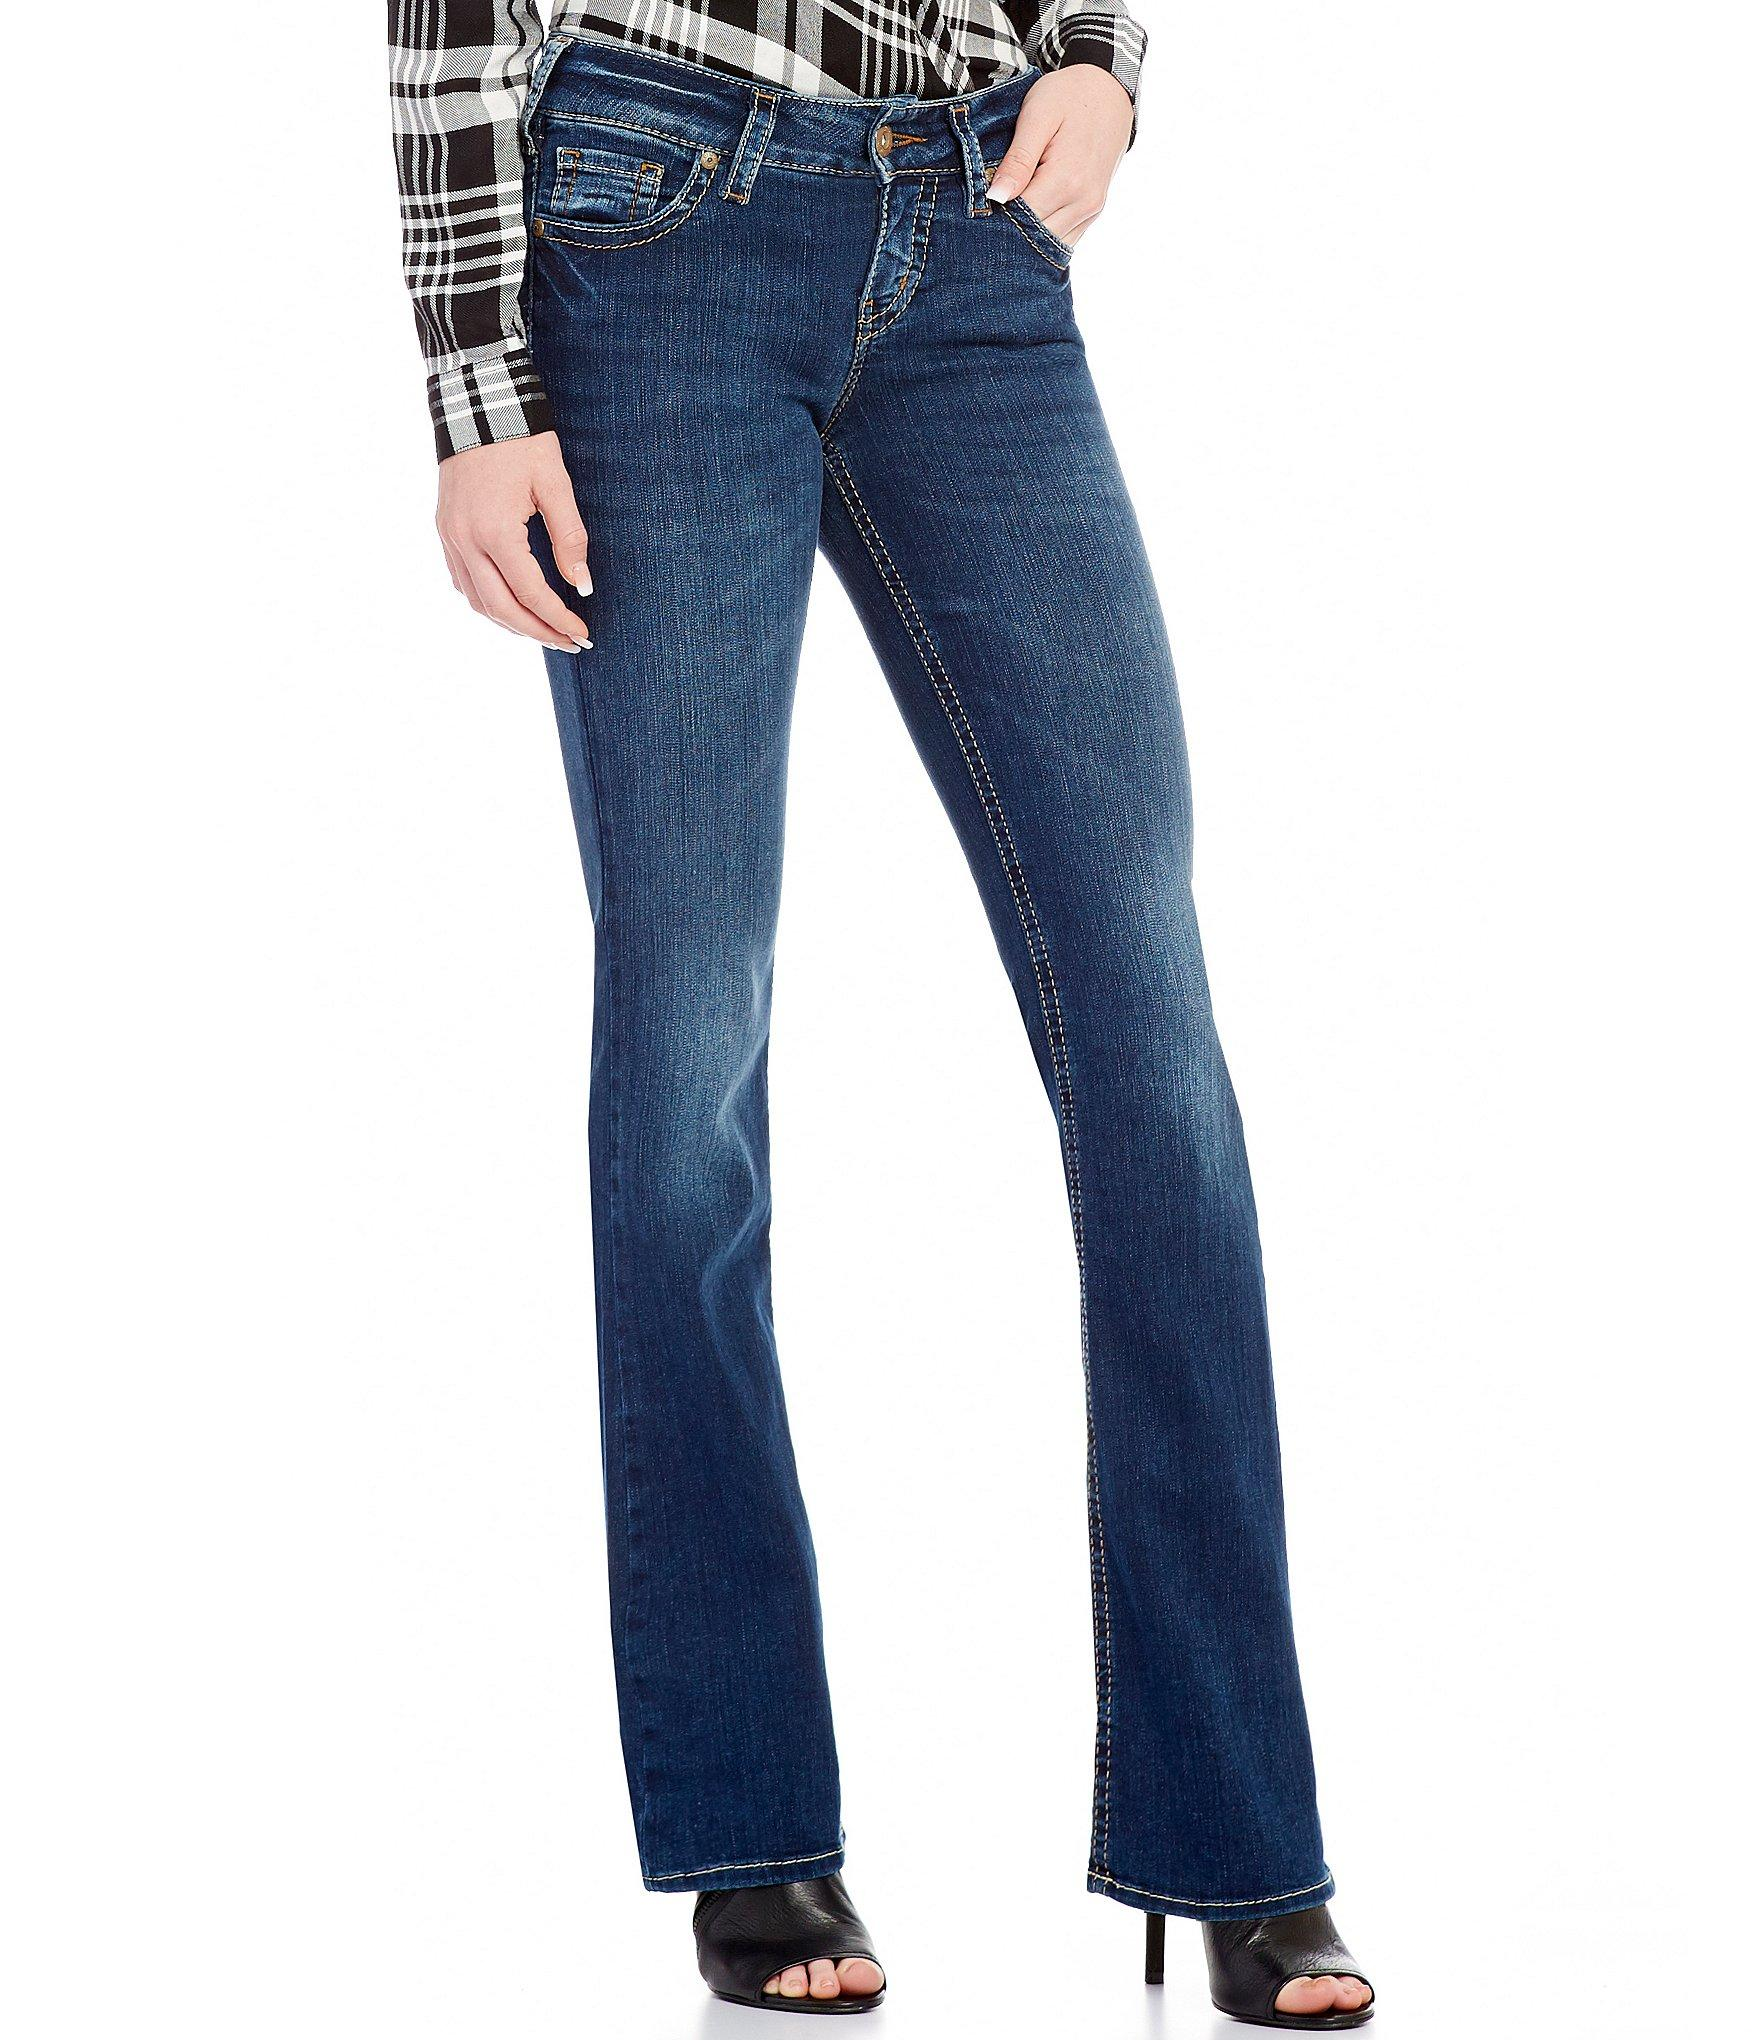 Silver jeans co. Suki Mid-rise Super Stretch Bootcut Jeans in Blue ...